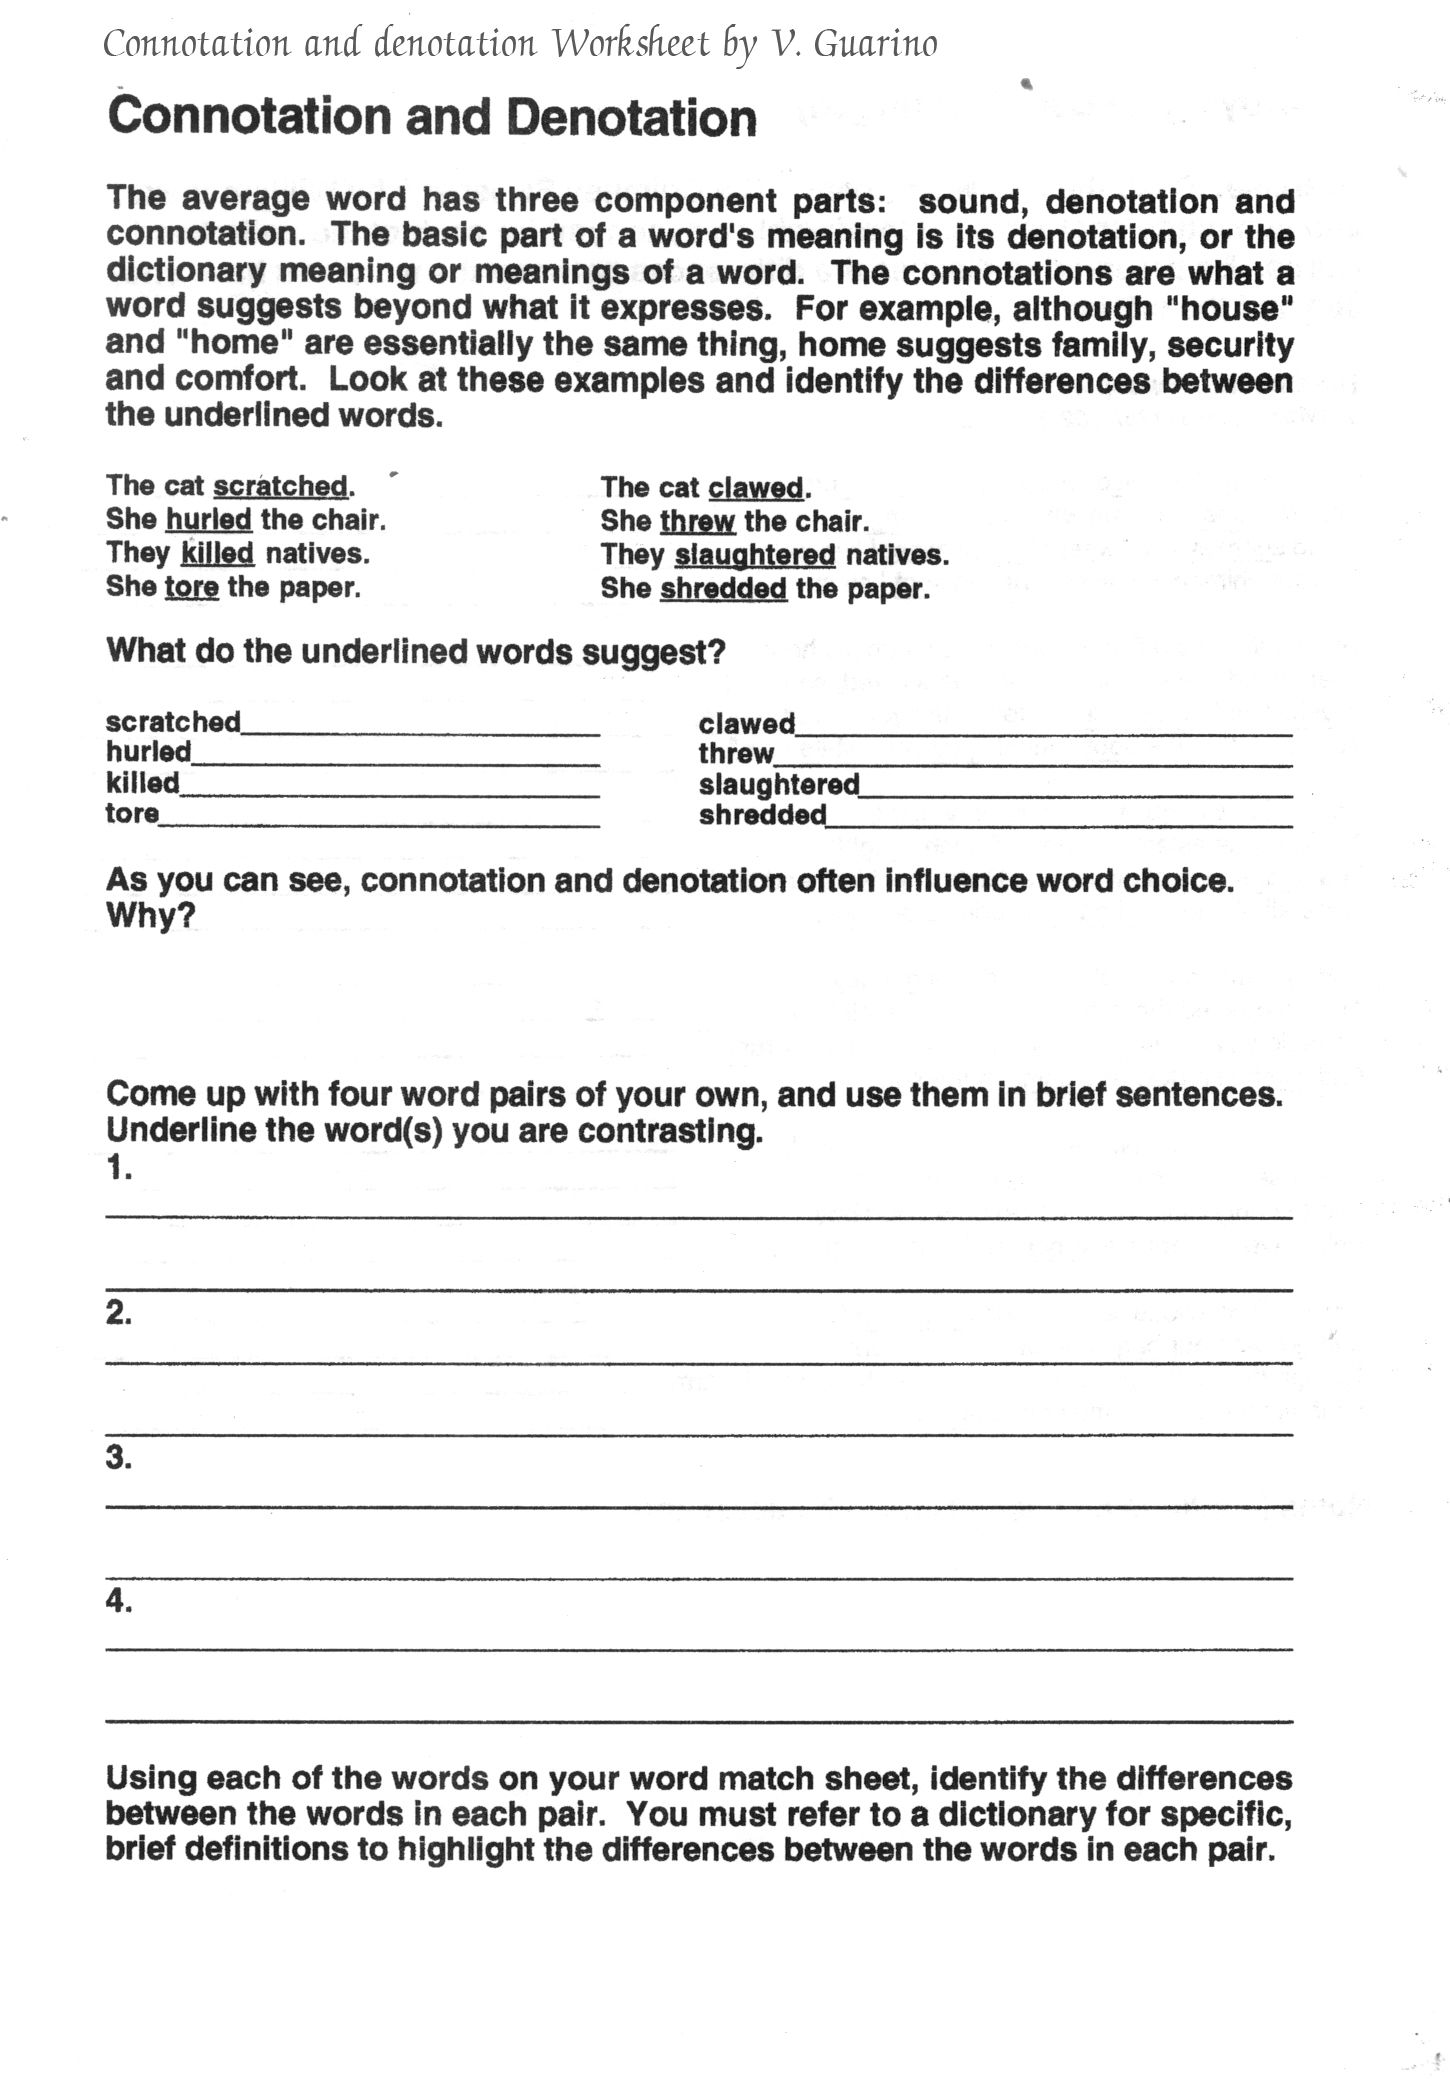 Connotation And Denotation Worksheets For Middle School – Connotation Worksheet